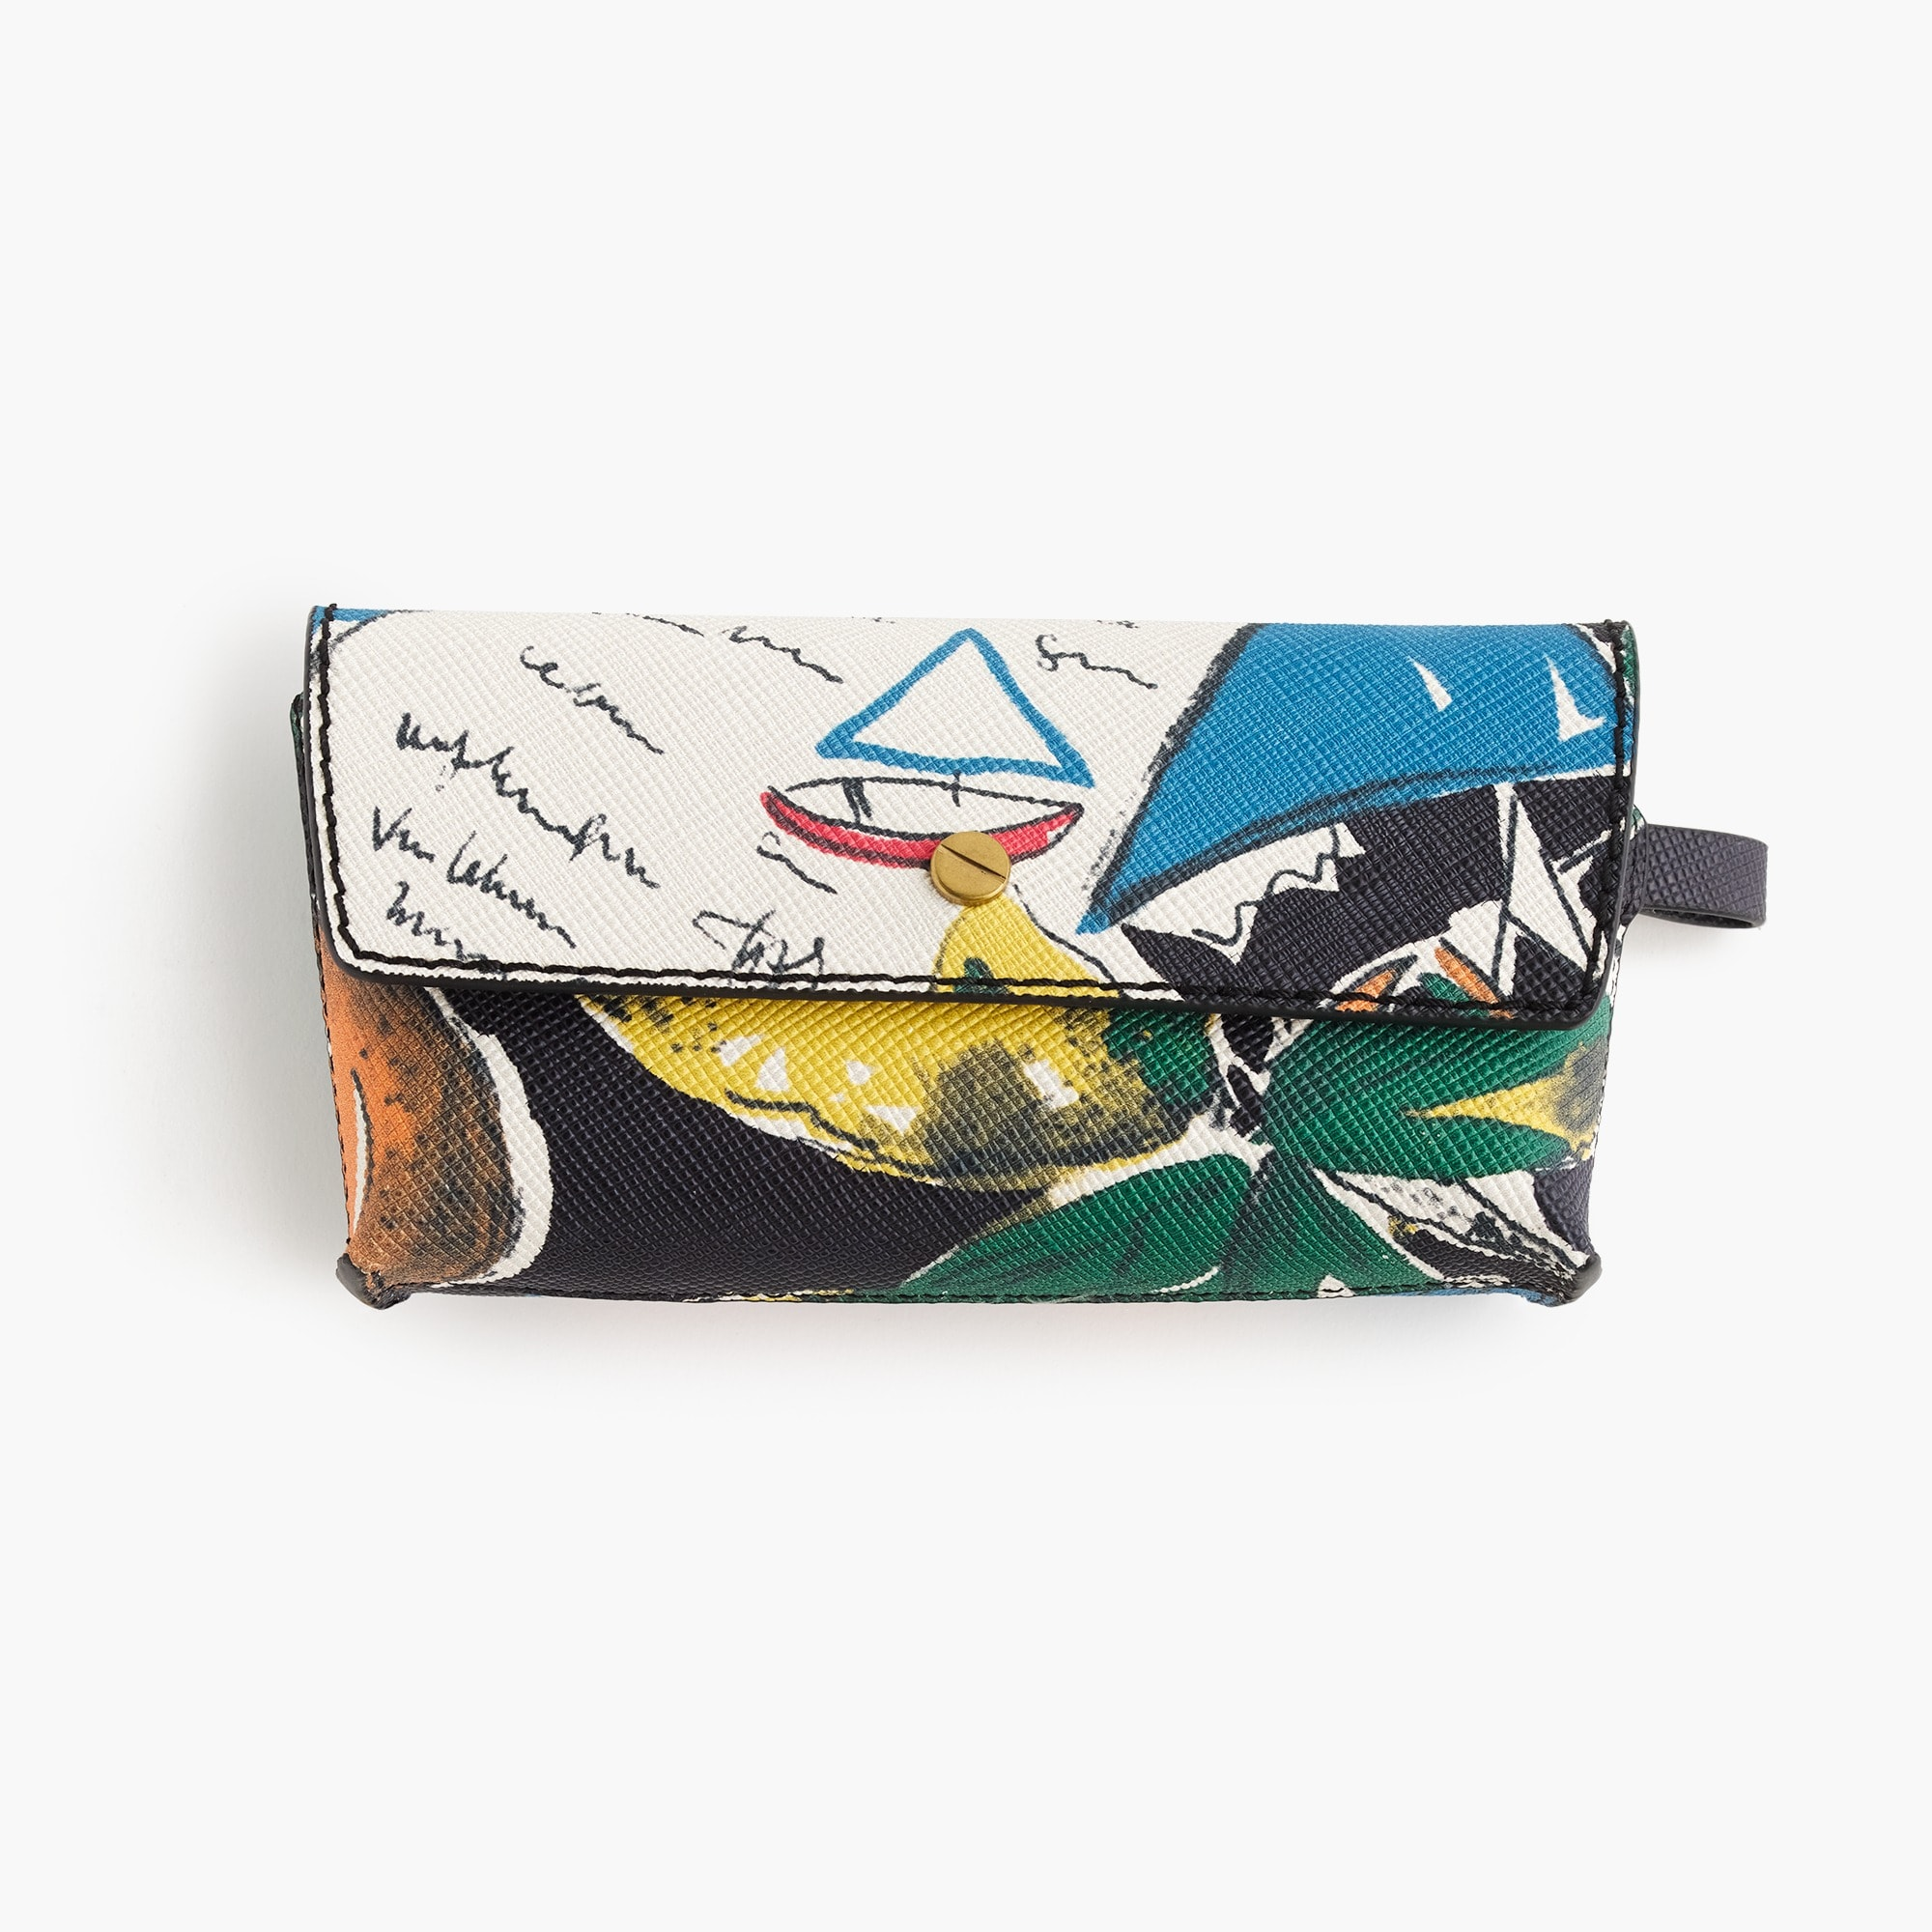 Sunglasses case in postcard print